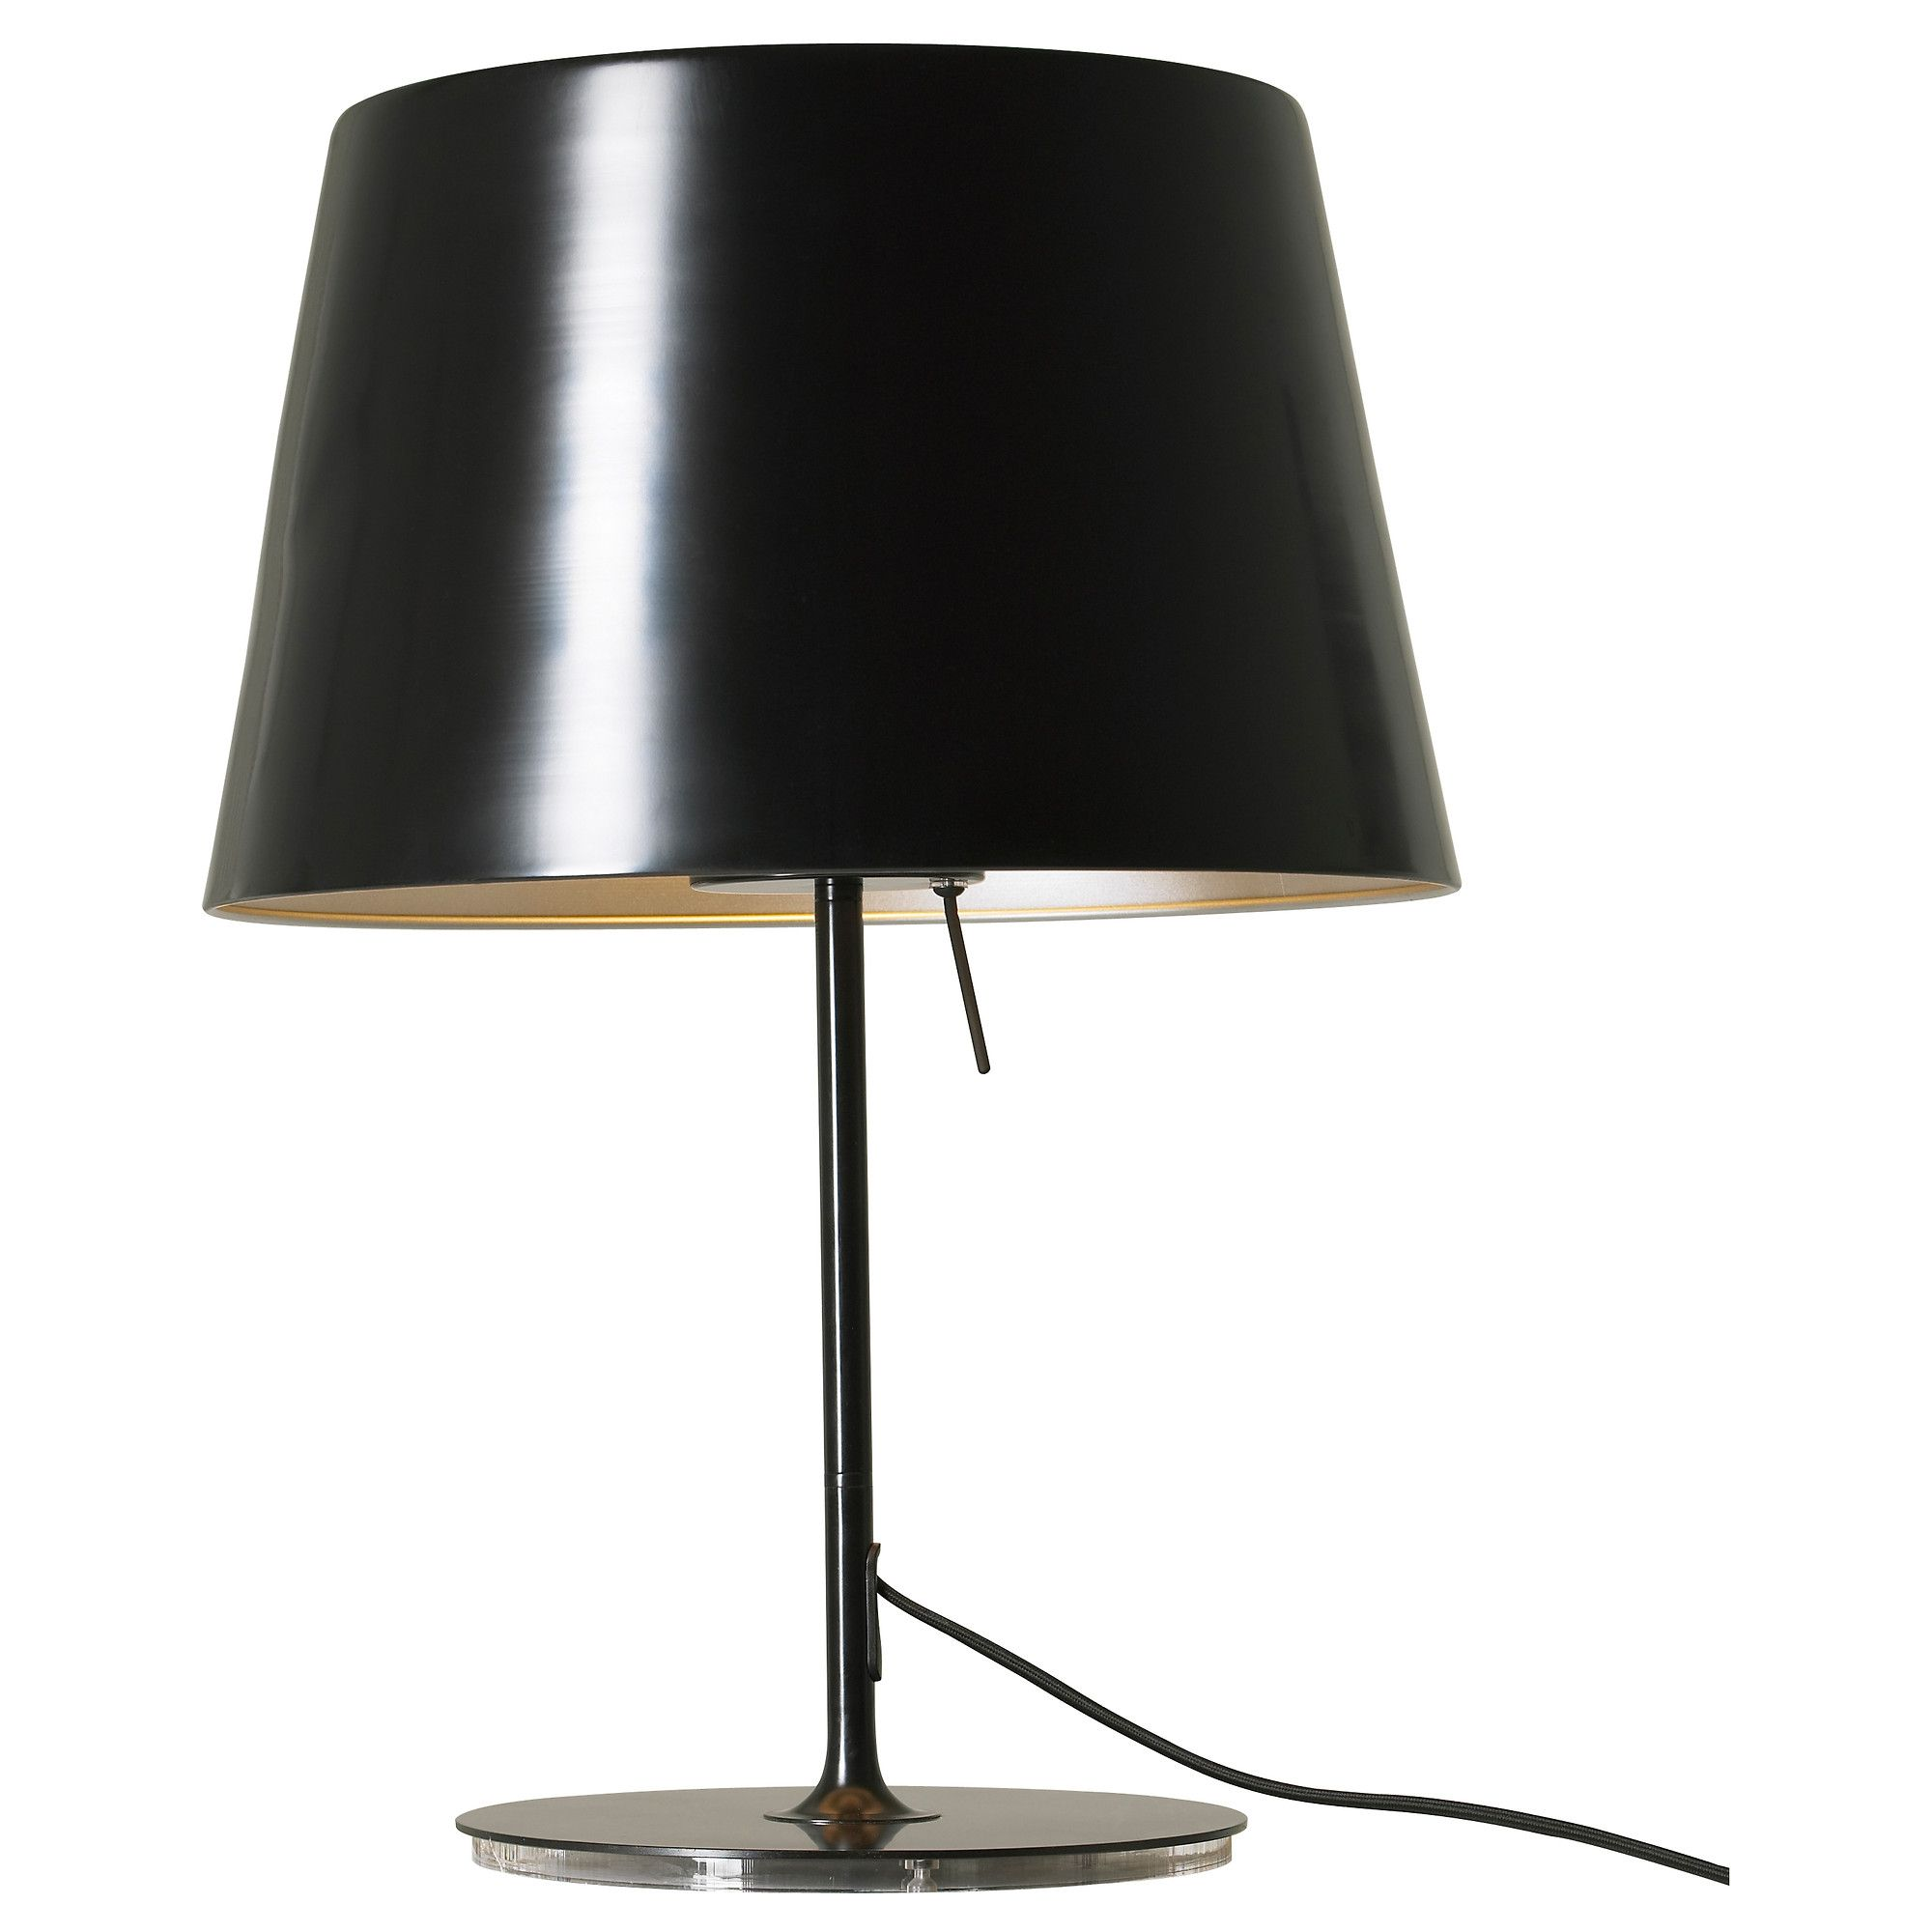 Ikea Us Furniture And Home Furnishings Table Lamp Table Lamp Lighting Black Table Lamps